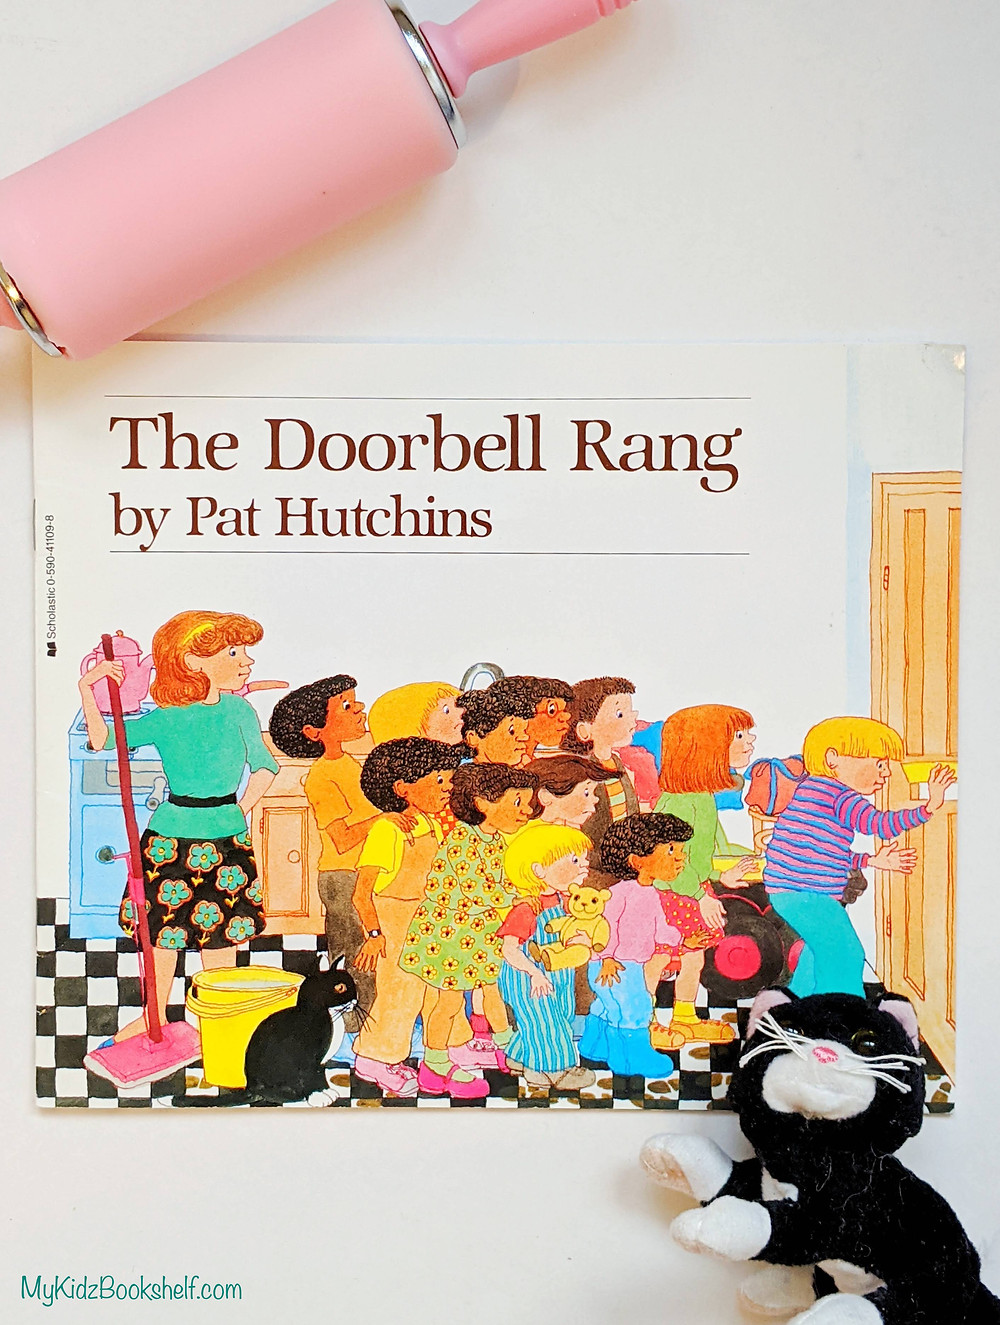 The Doorbell Rang by Pat Hutchins book cover shows kids and Ma in kitchen going to door with cat looking on